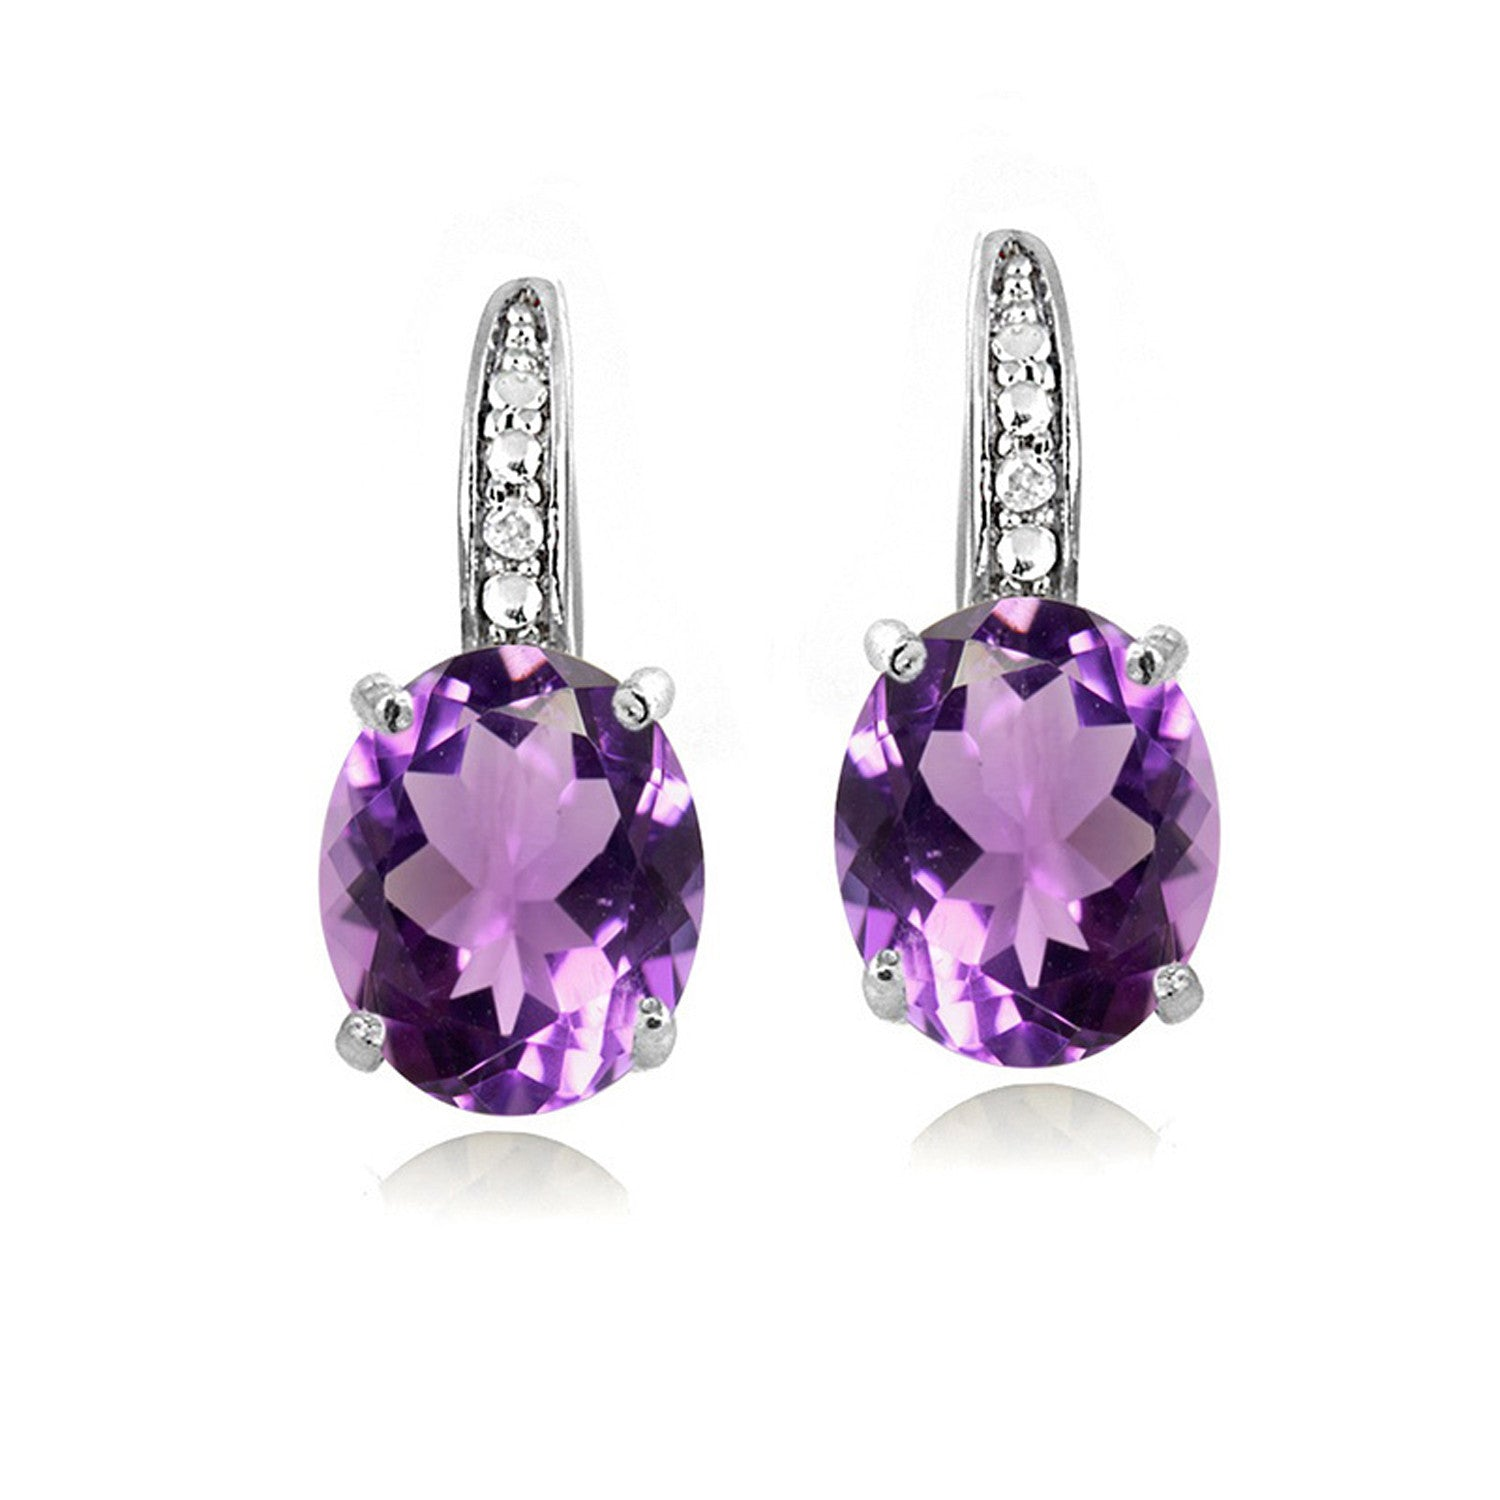 Sterling Silver Diamond & Gemstone Accent Leverback Earrings - Amethyst